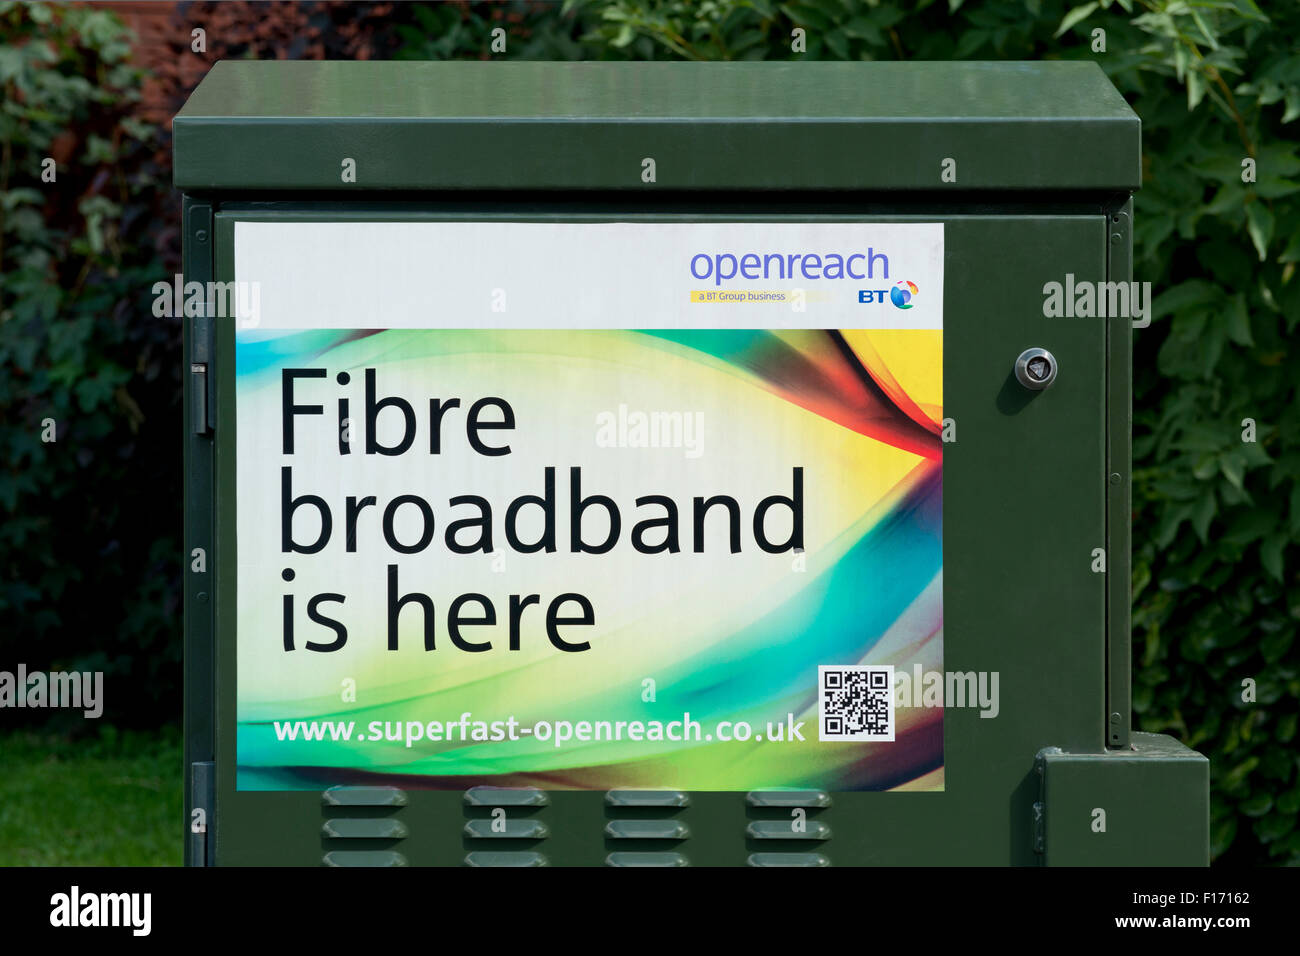 A BT Openreach Fibre Broadband is here sticker on the side of a green engineer's box - Stock Image